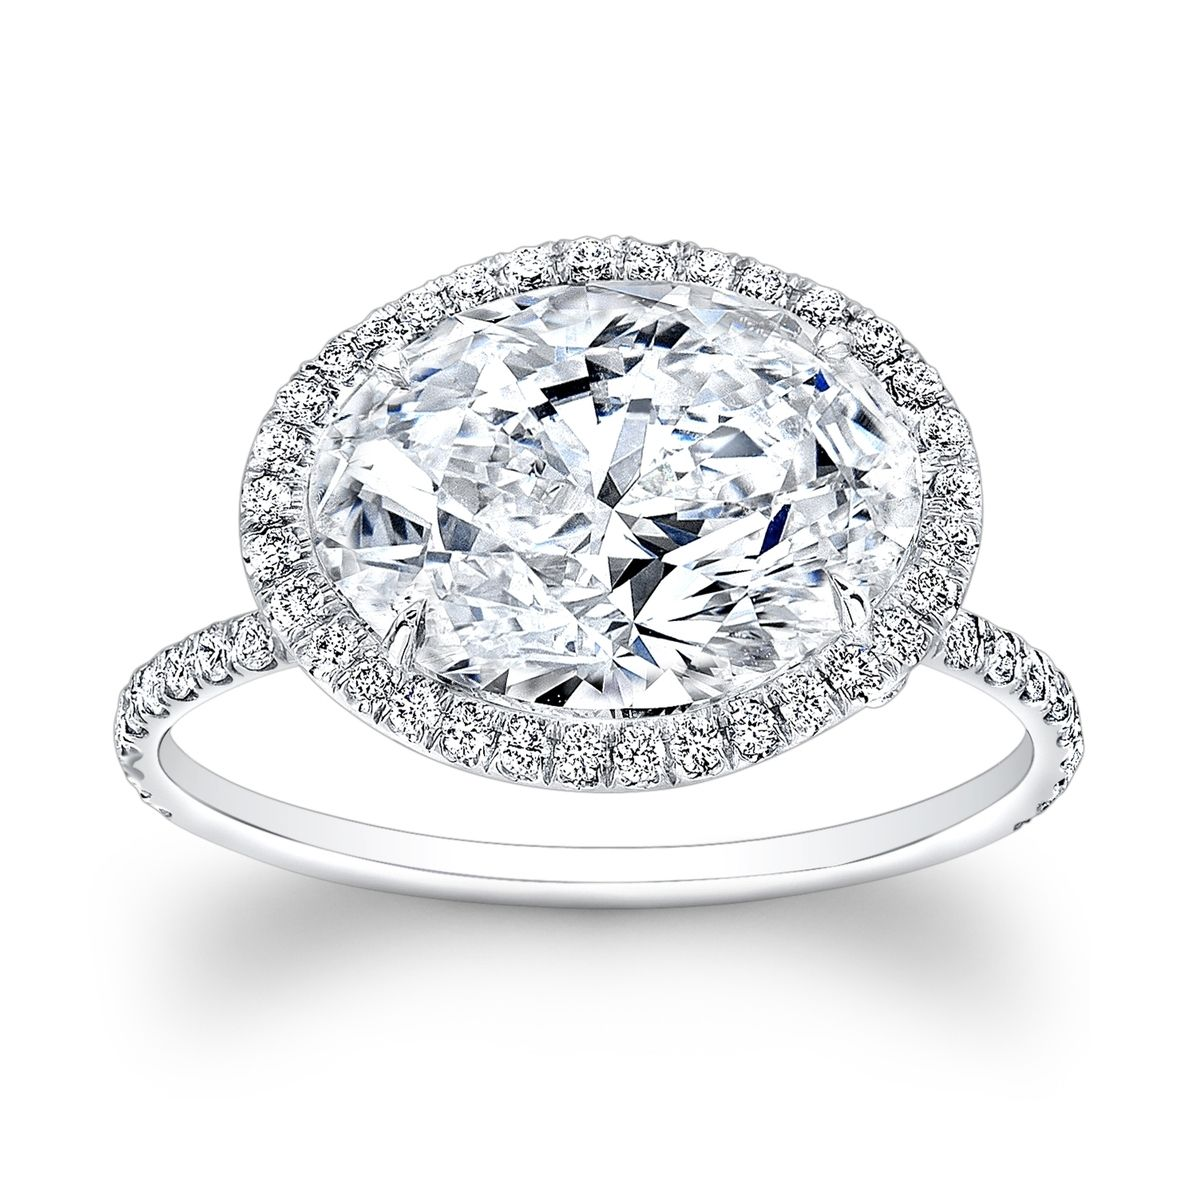 buy a handmade micro pave oval halo engagement ring made